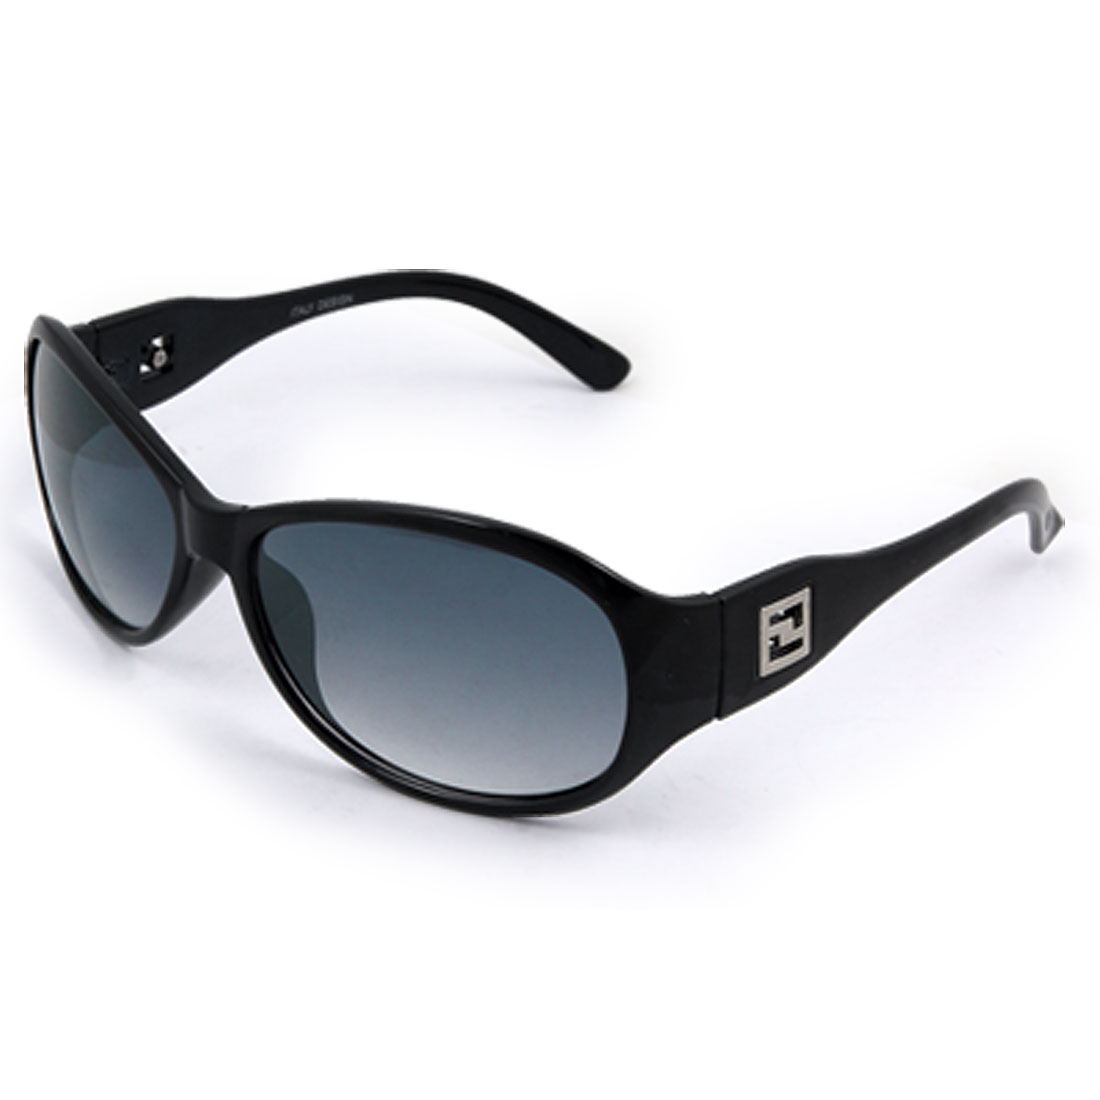 Oval Lens Plastic Full Frame Arm Black Sunglasses for Ladies